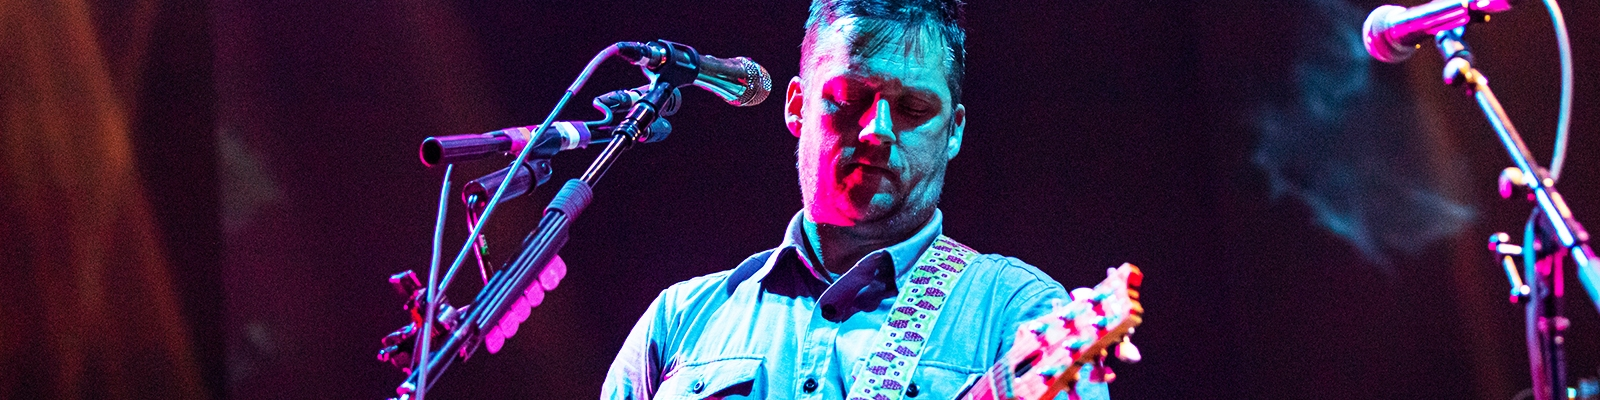 Isaac Brock Reviews Every Modest Mouse Album, Including The New 'The Golden Casket'